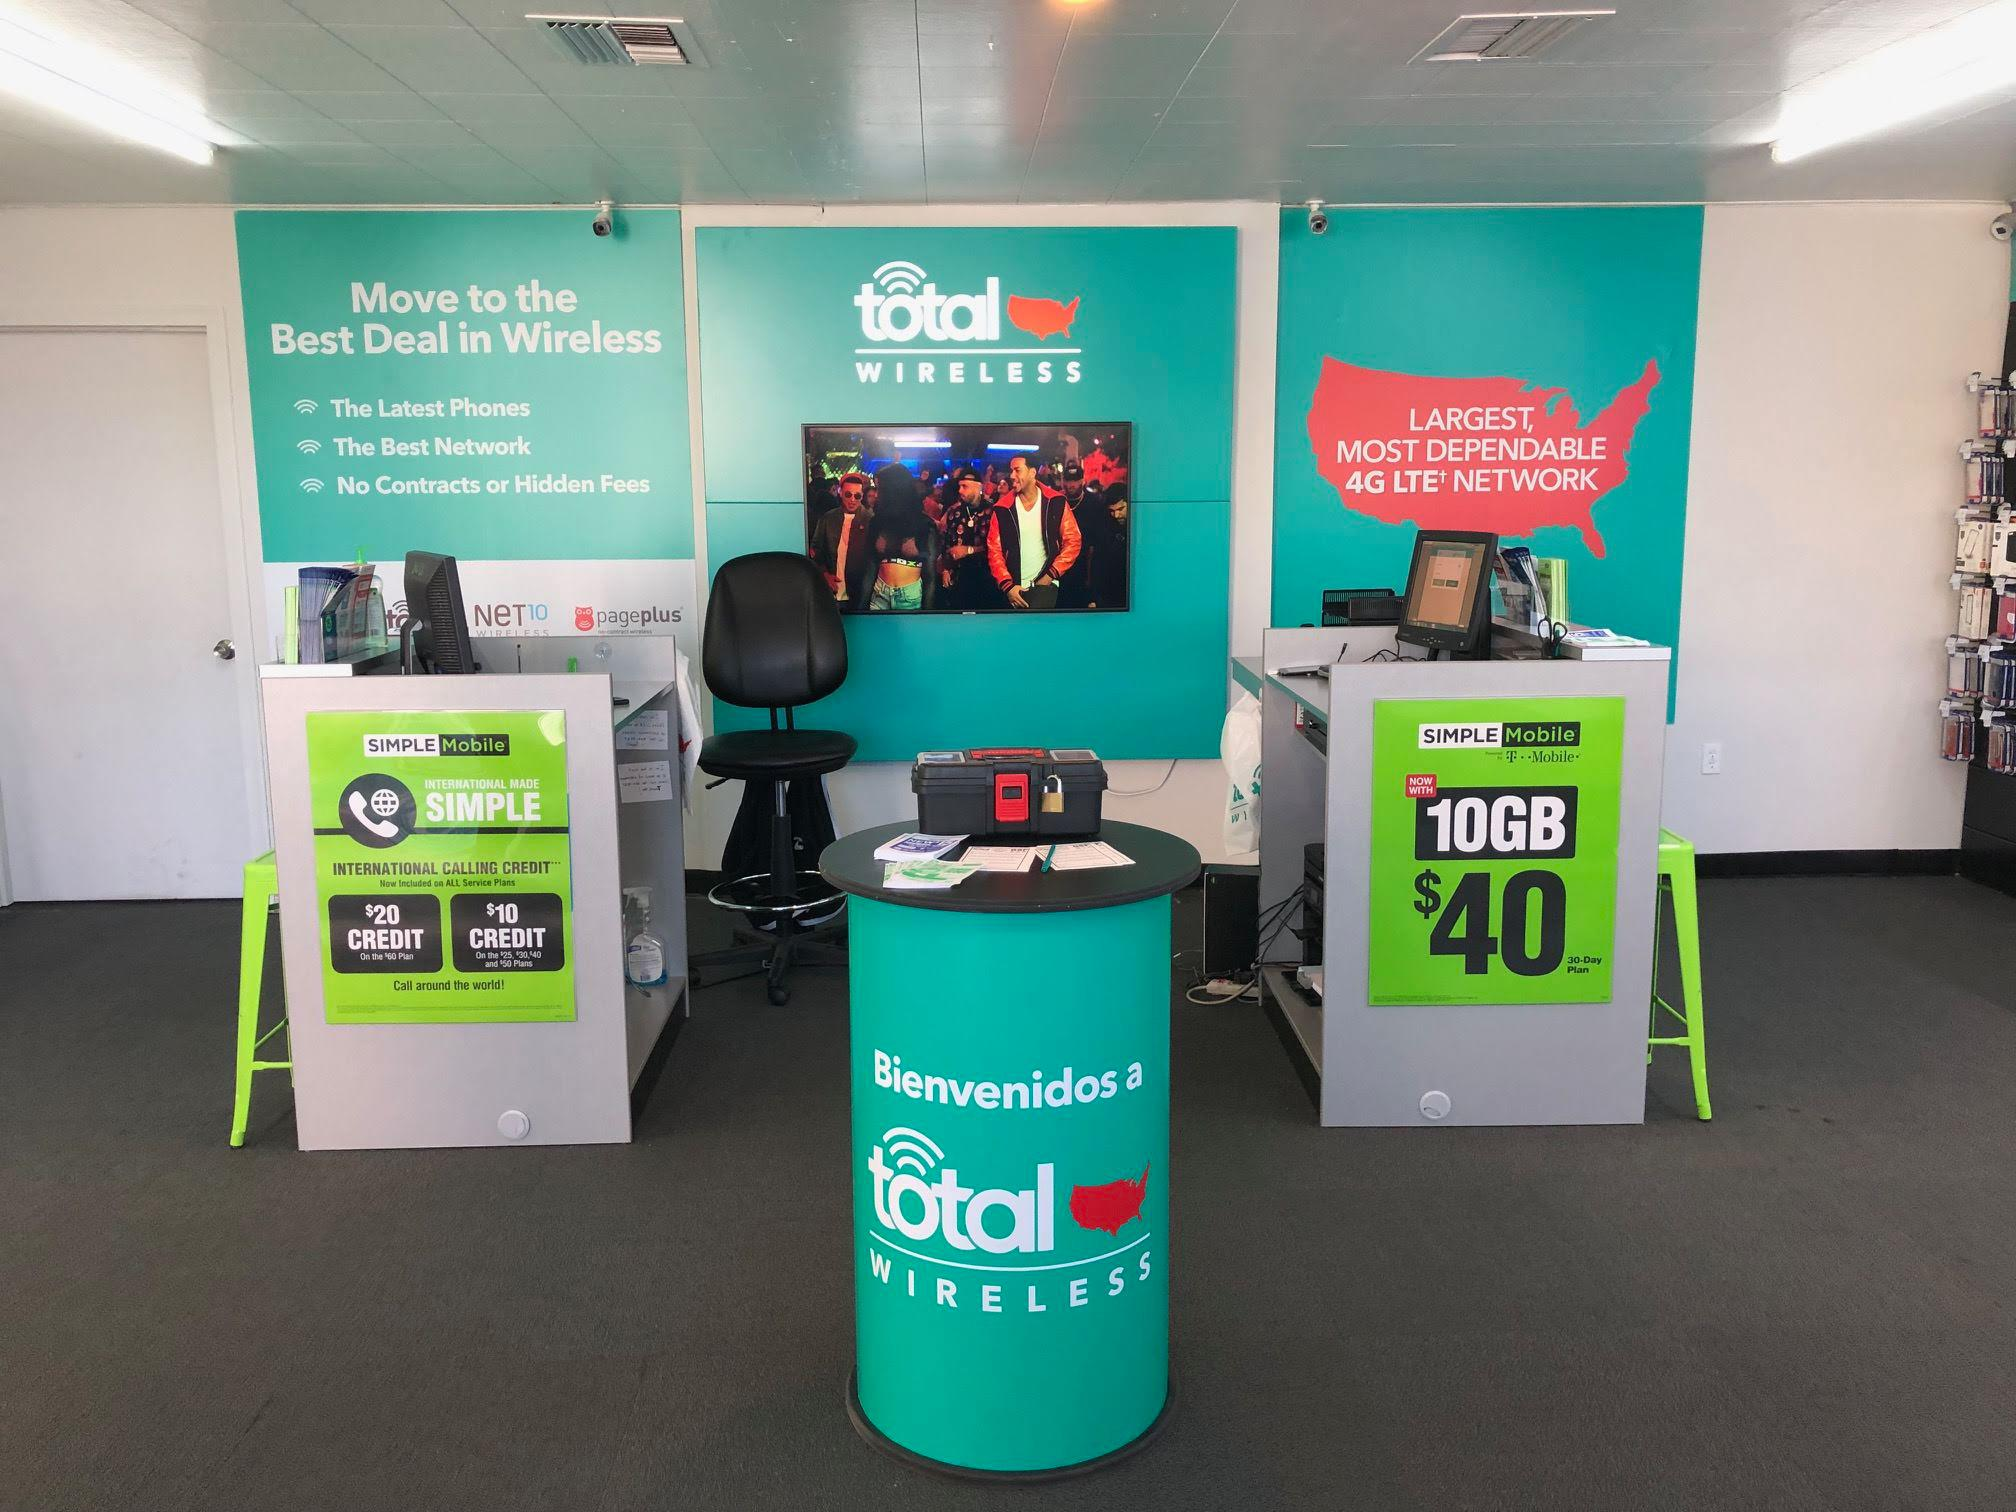 Total Wireless Store image 1